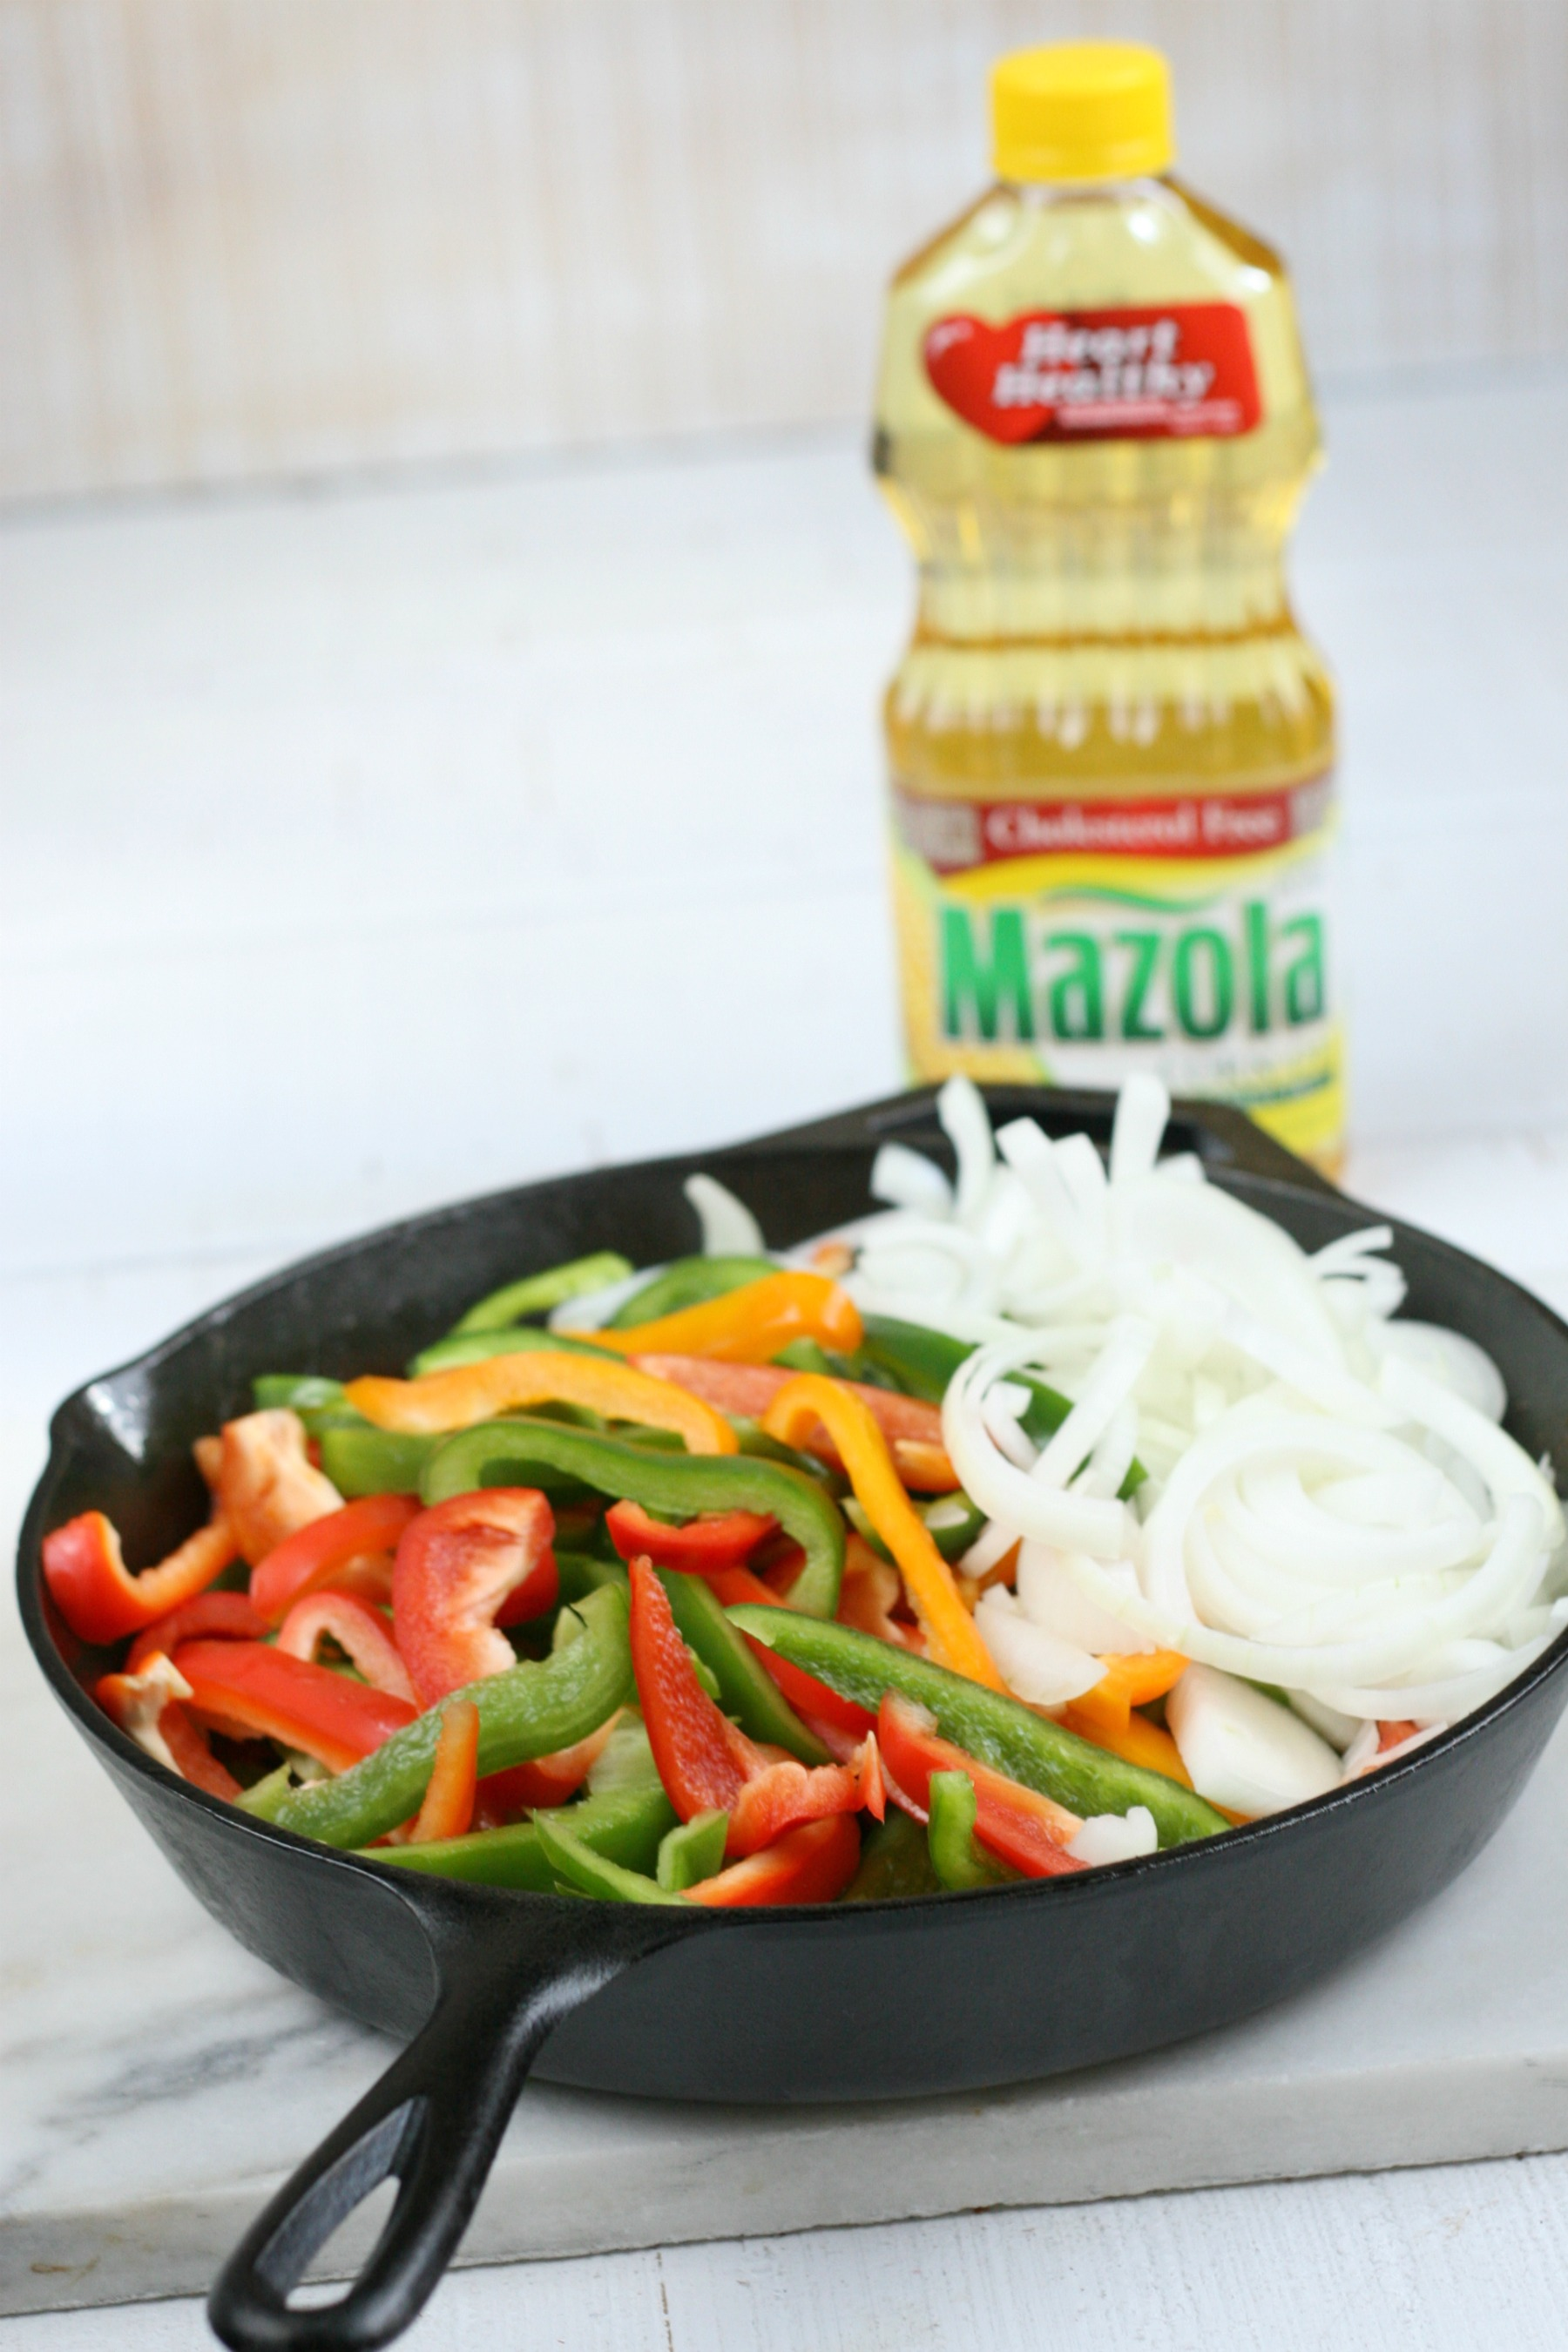 Bottle of Mazola corn oil behind a cast iron skillet of onions and peppers.